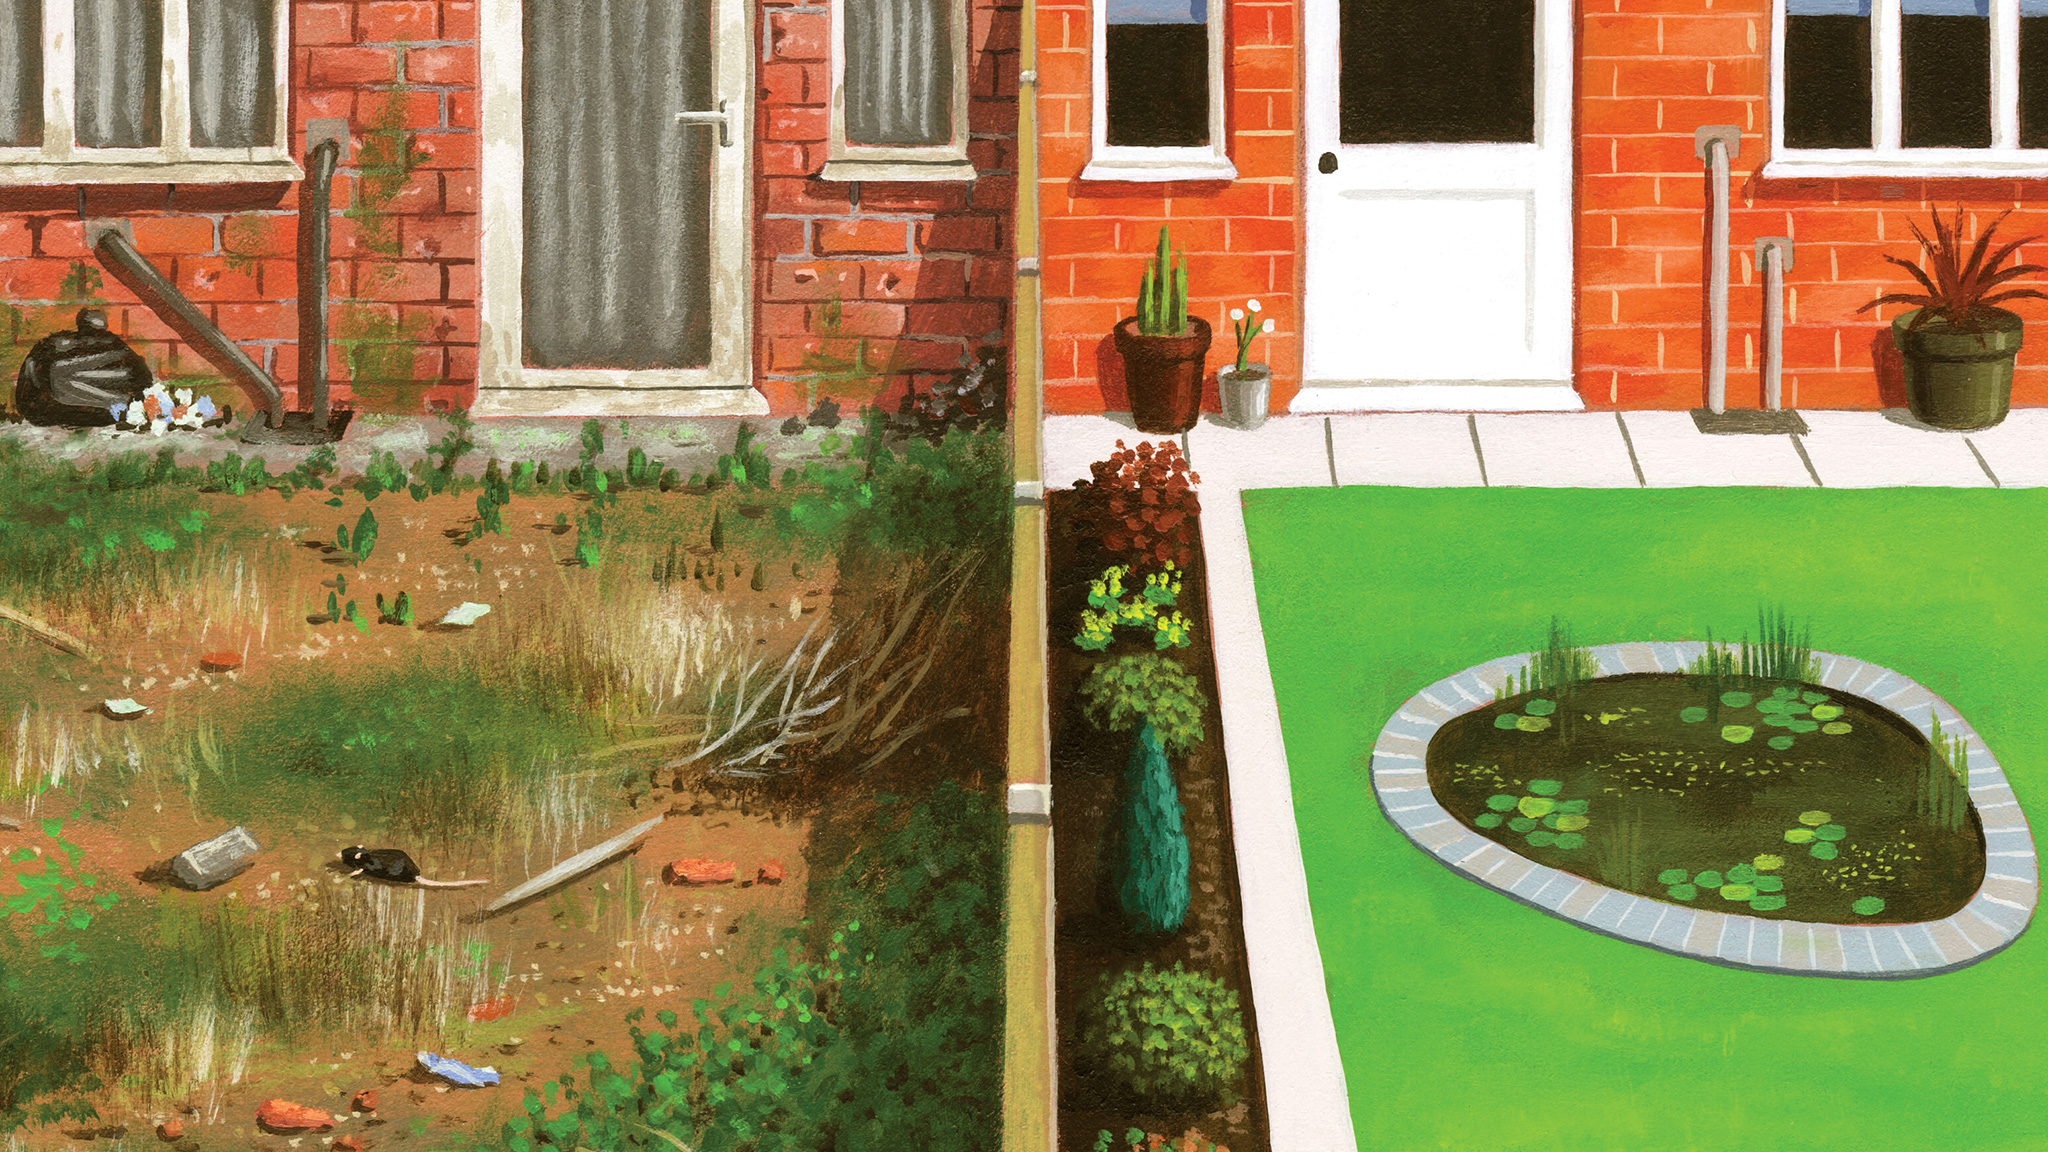 Property law the garden next door is a jungle what can i do property law the garden next door is a jungle what can i do financial times spiritdancerdesigns Image collections